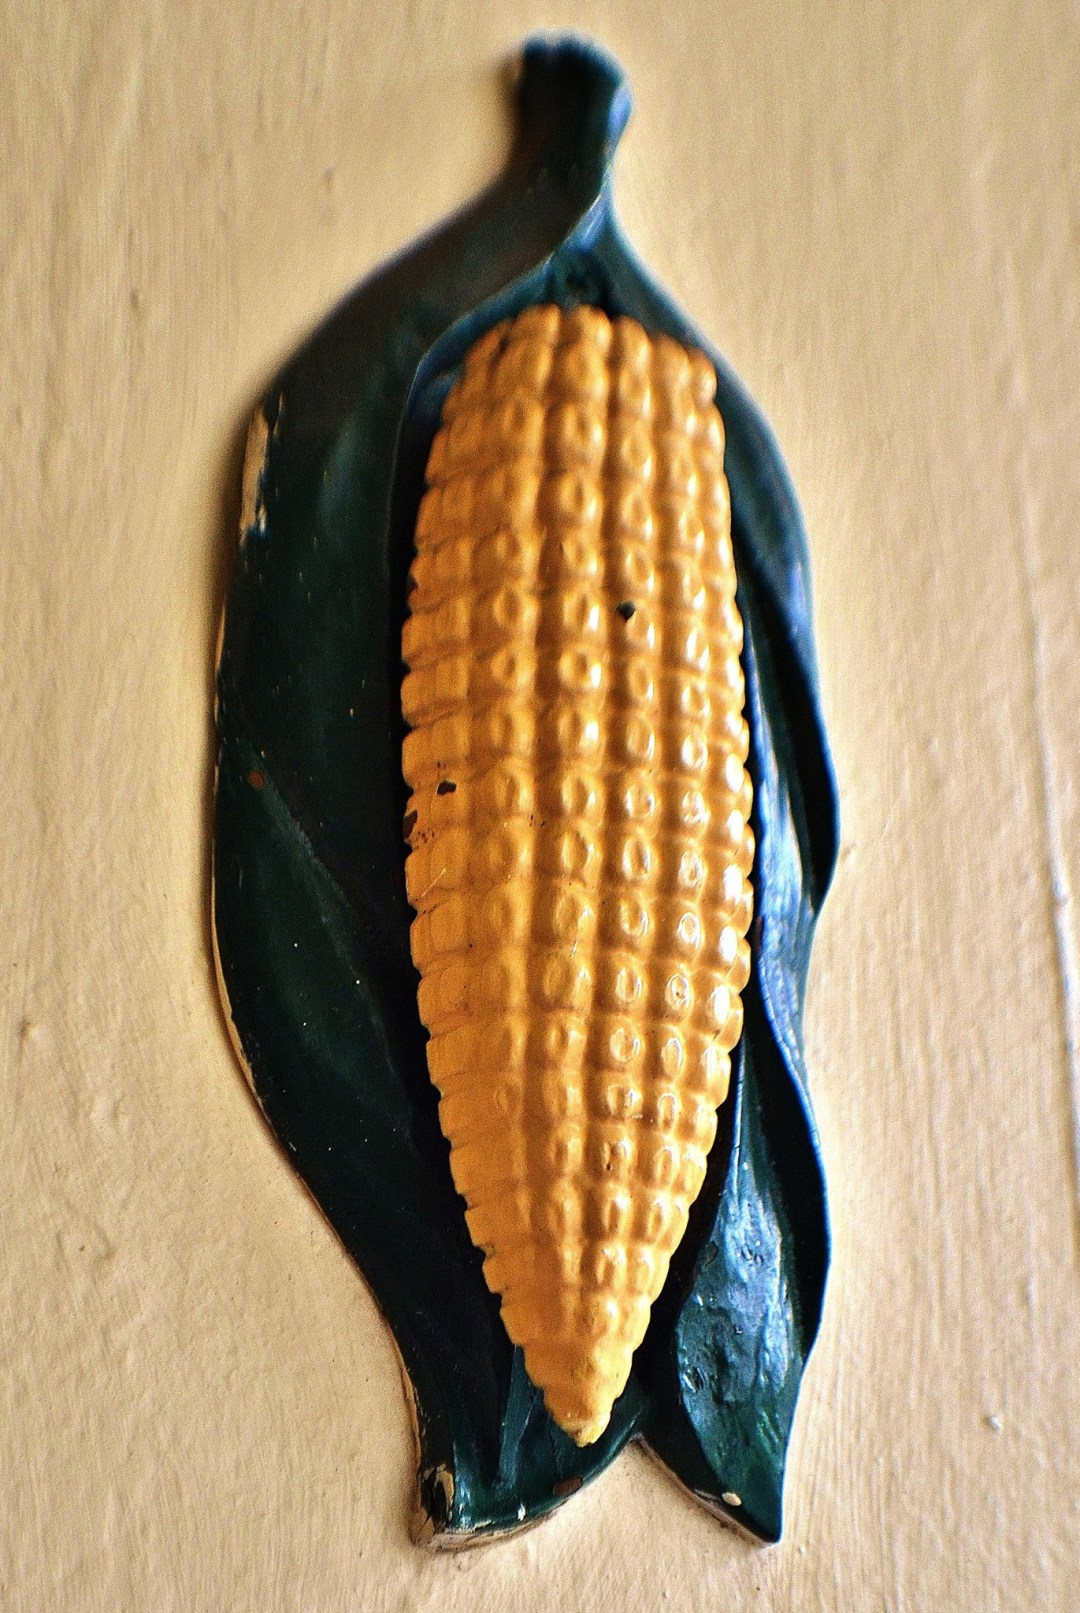 Cast iron corn cob door knocker at the Cornstalk Fence Hotel in the French Quarter of New Orleans